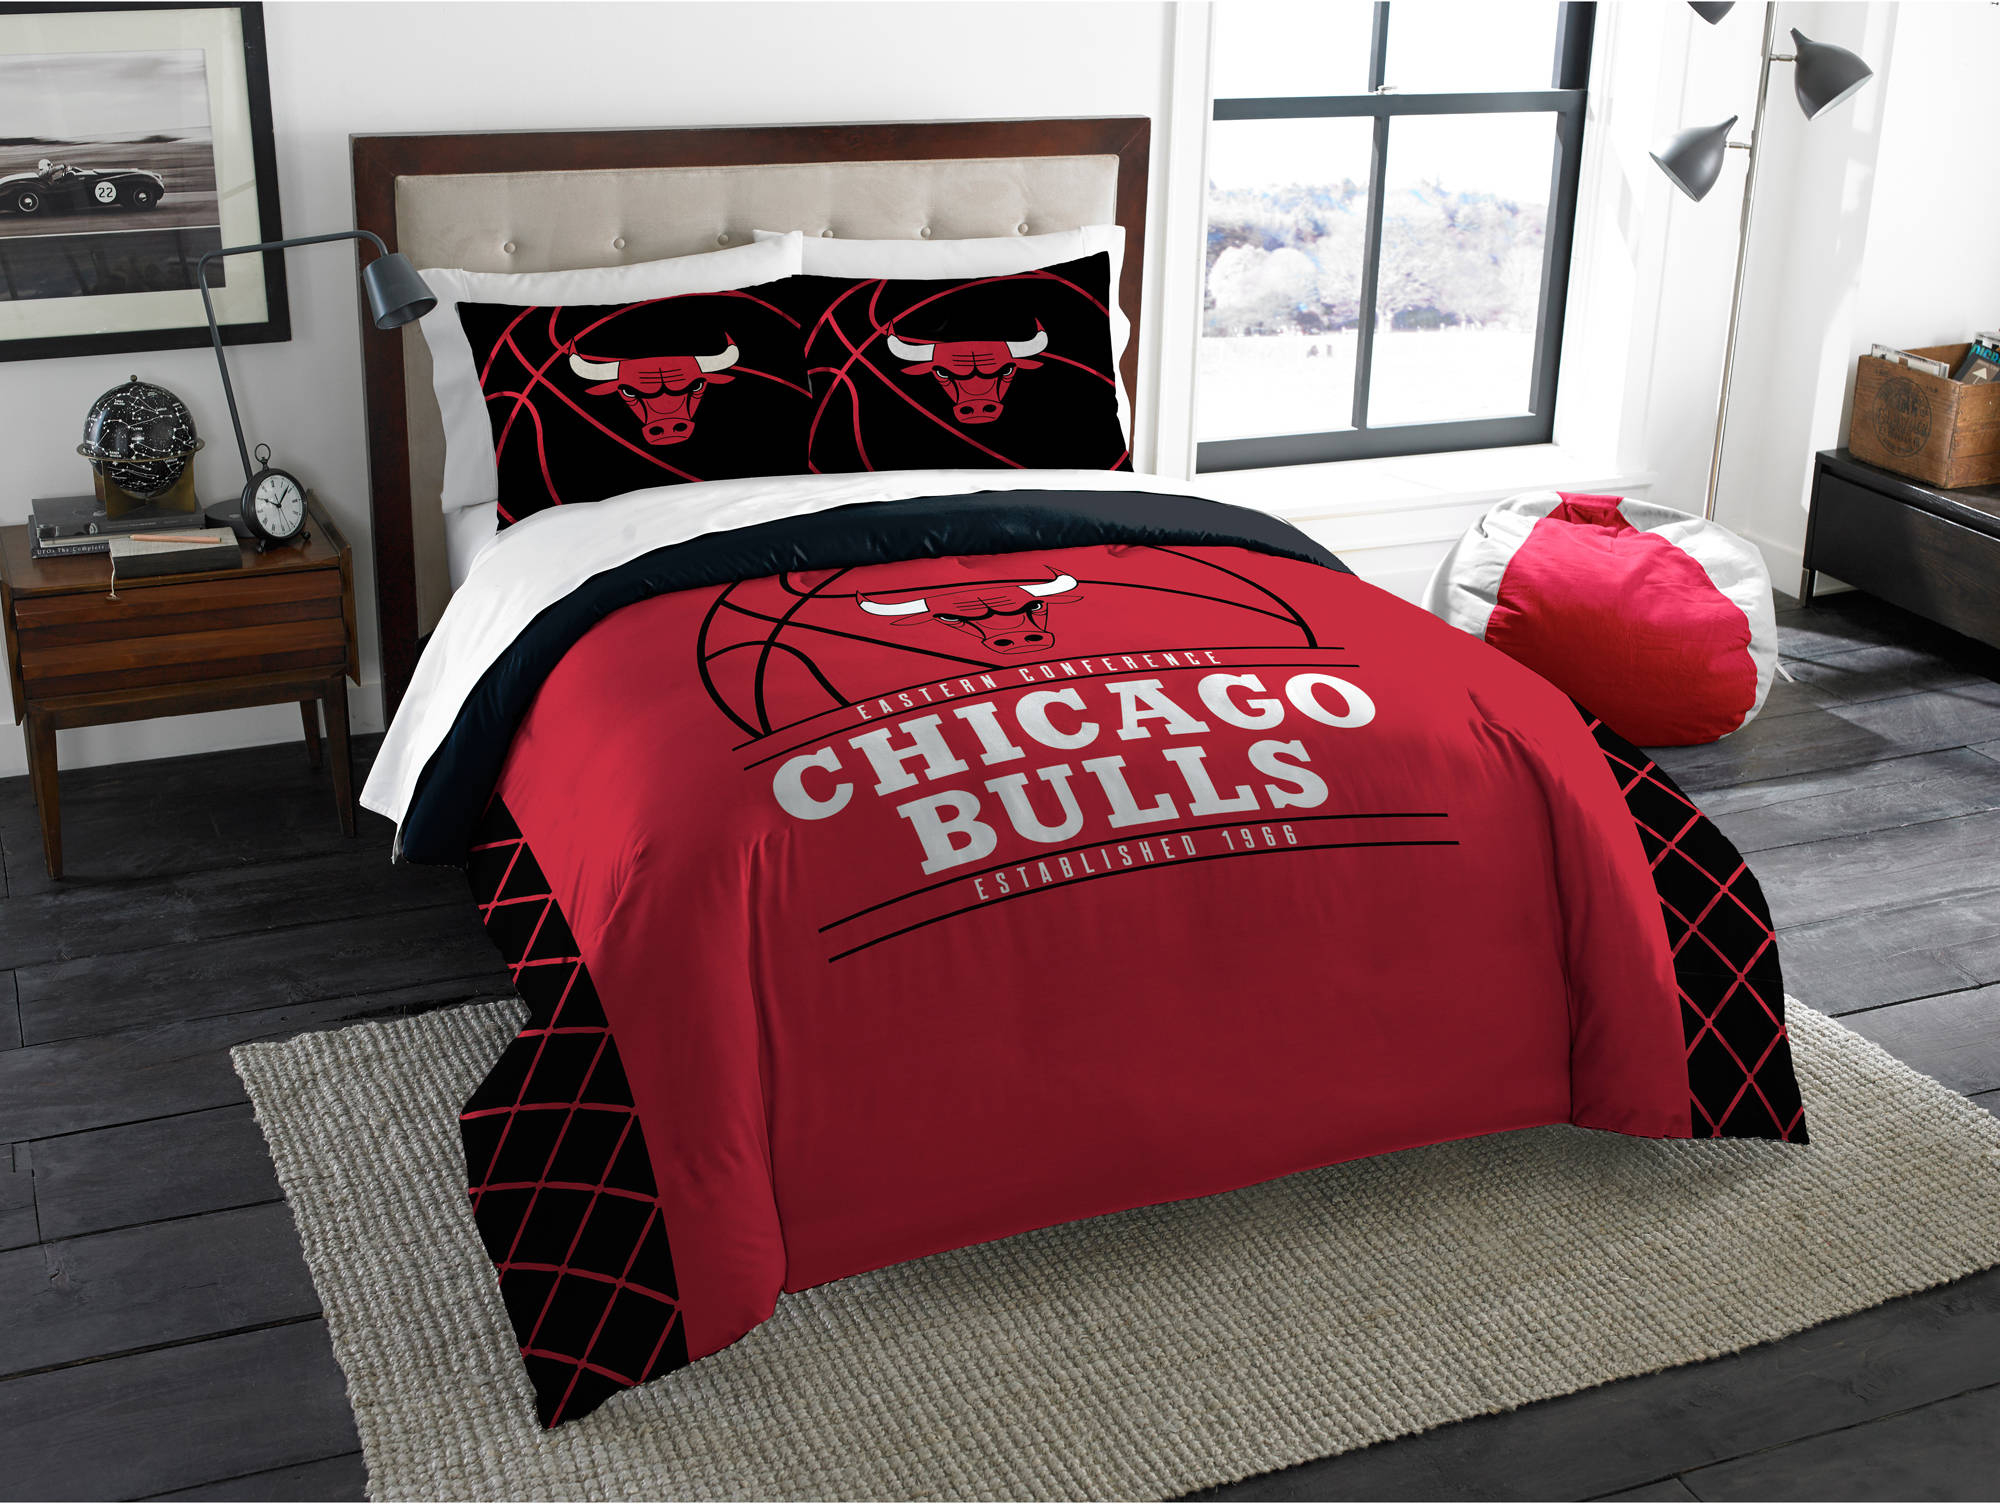 Details about Chicago Bulls Comforter Set Nba Reverse Slam Bedding 3 Piece  Size Full/Queen Red